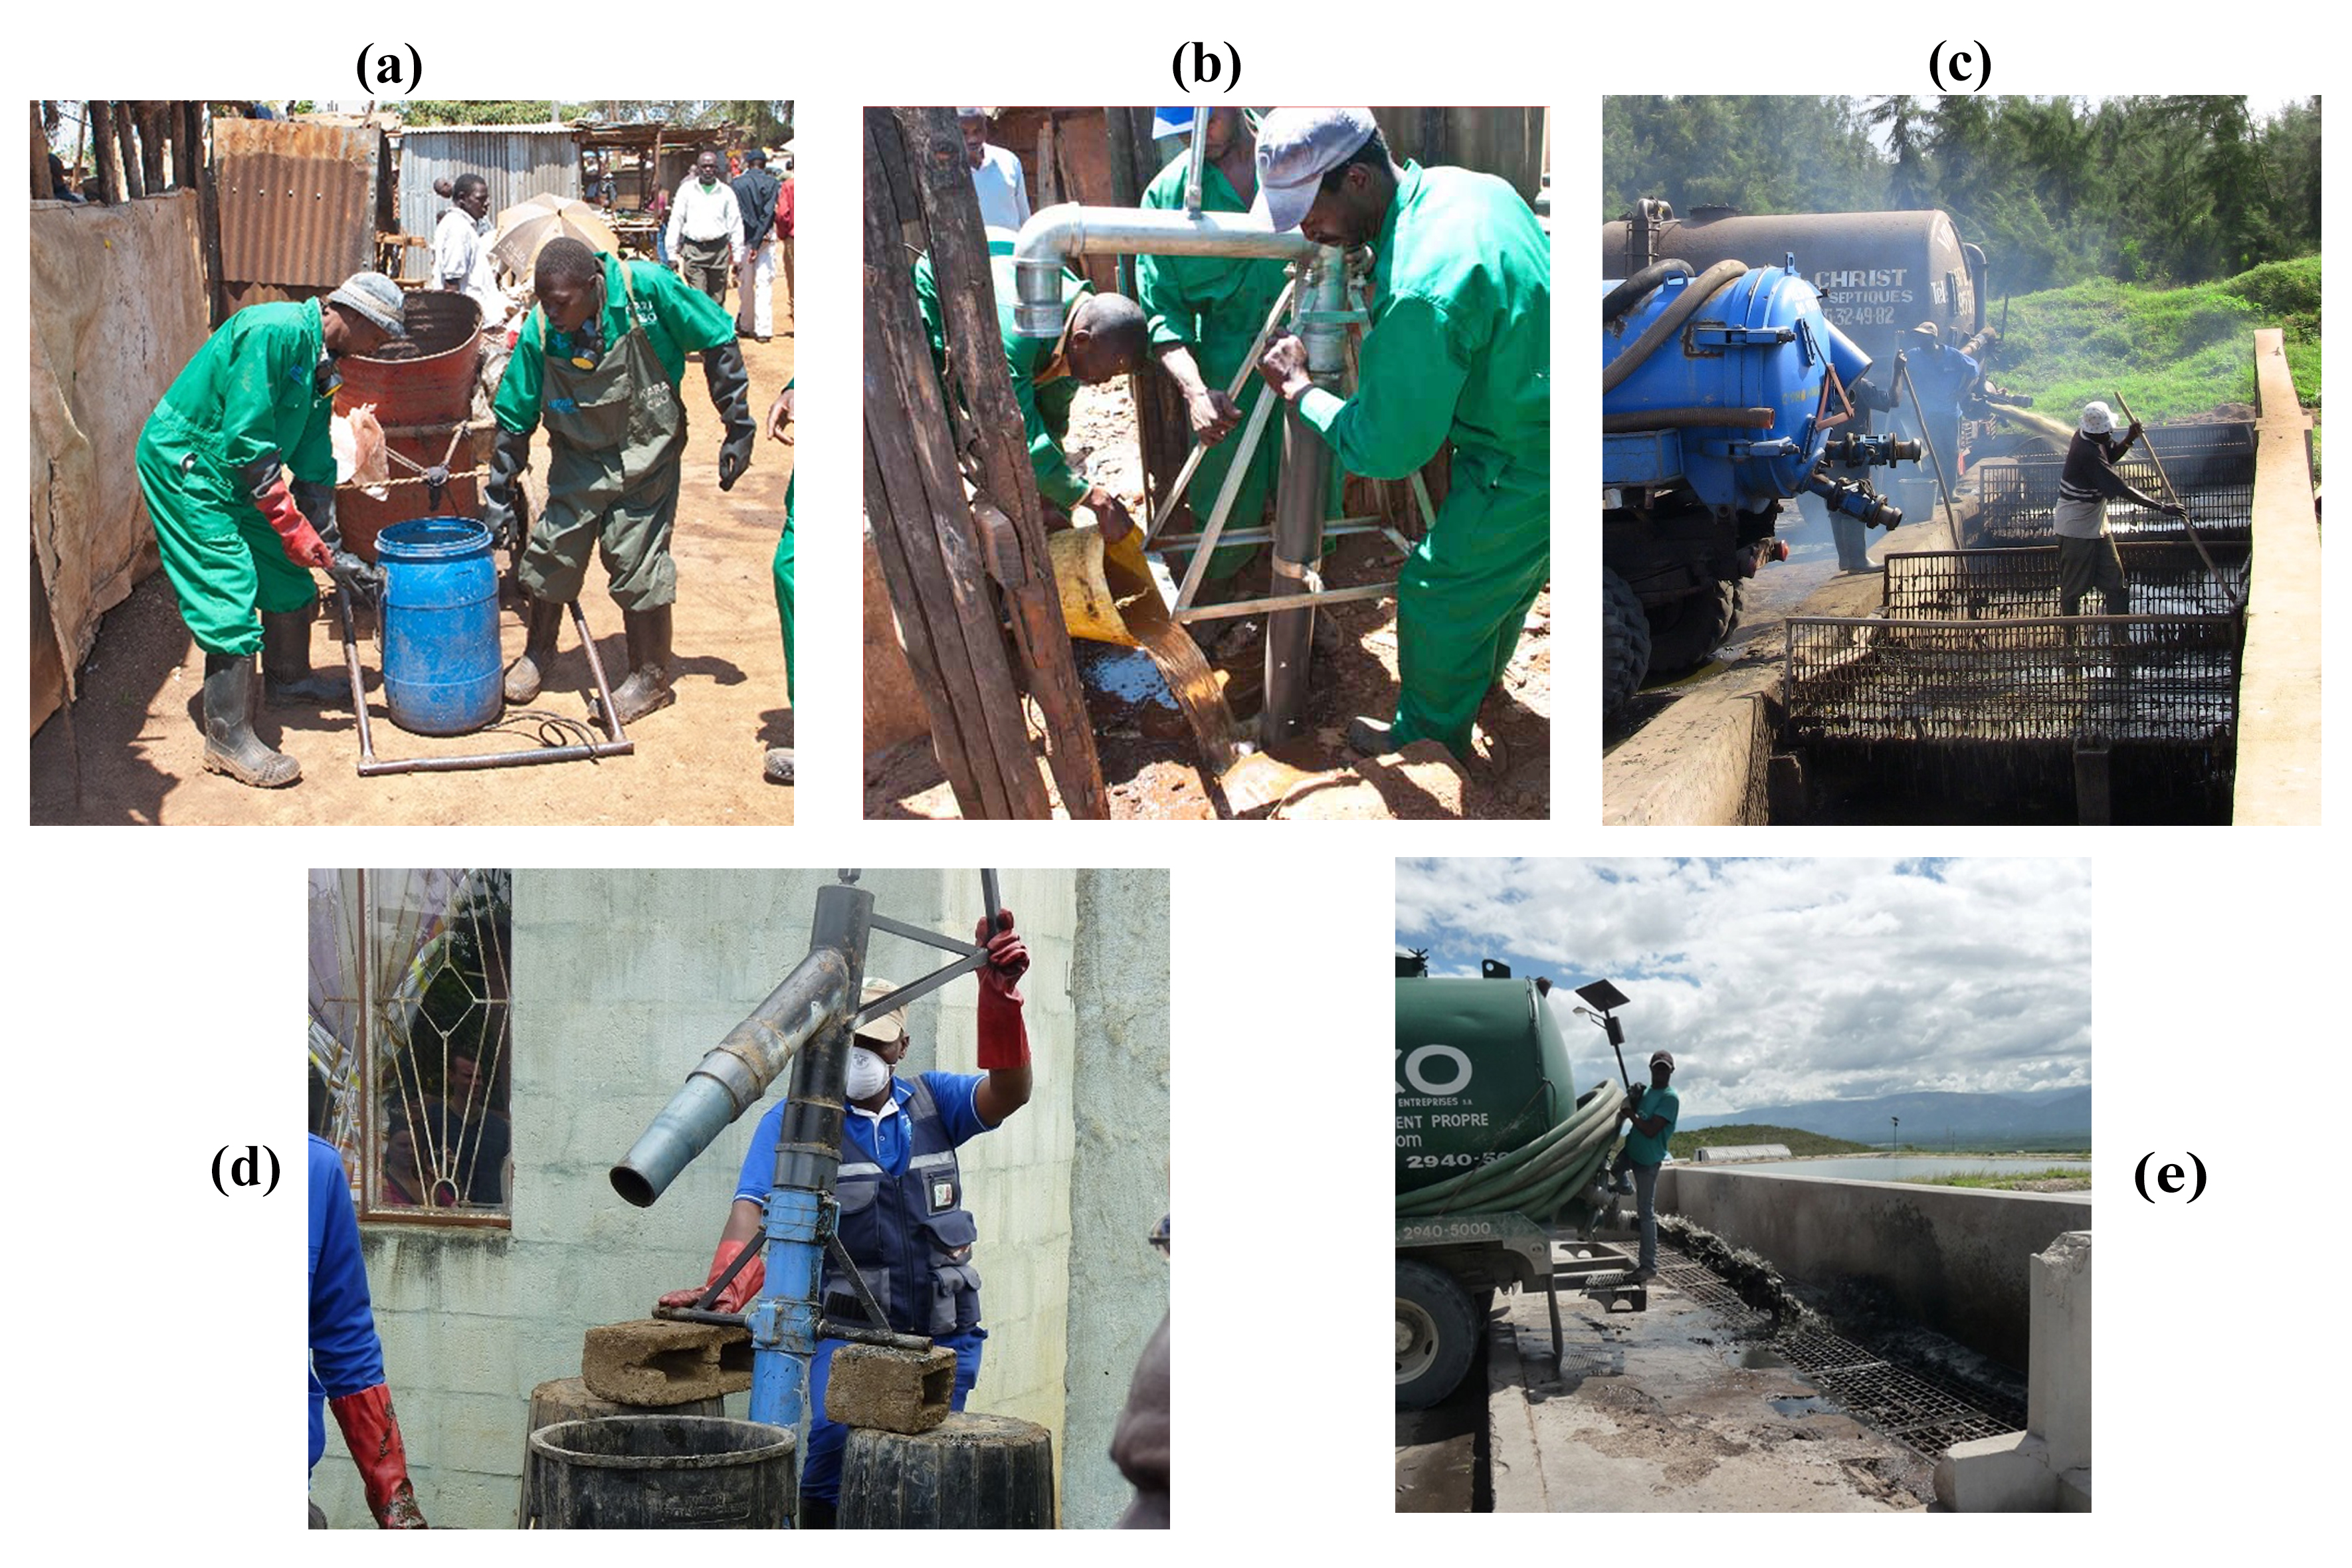 Collection and Conveyance of Excreta and Wastewater in On